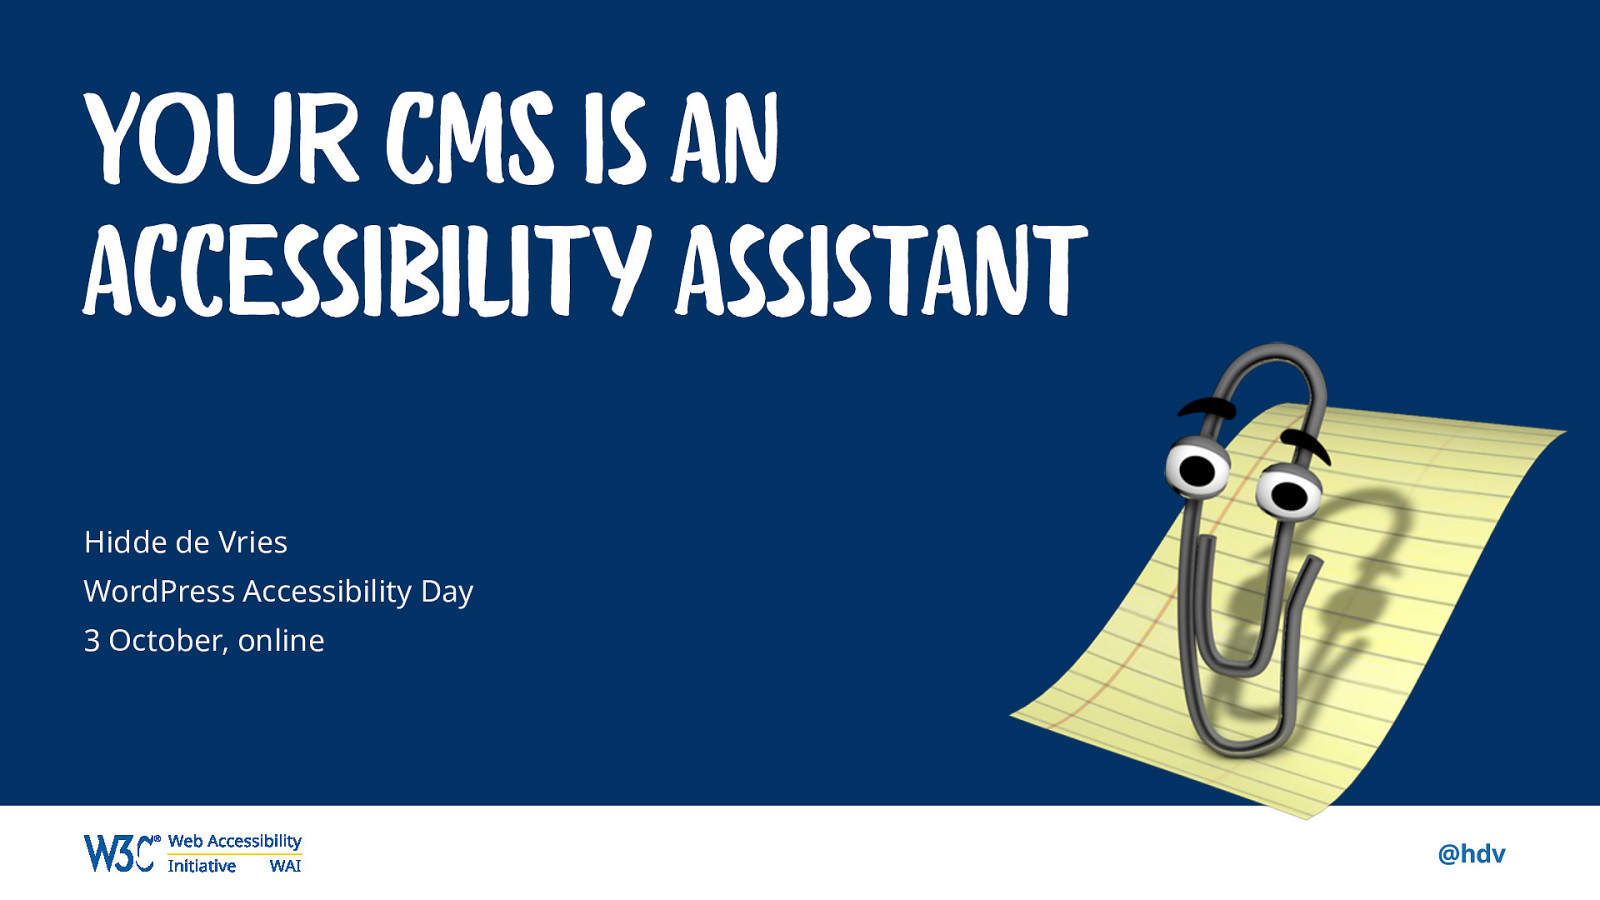 Your CMS is an accessibility assistant